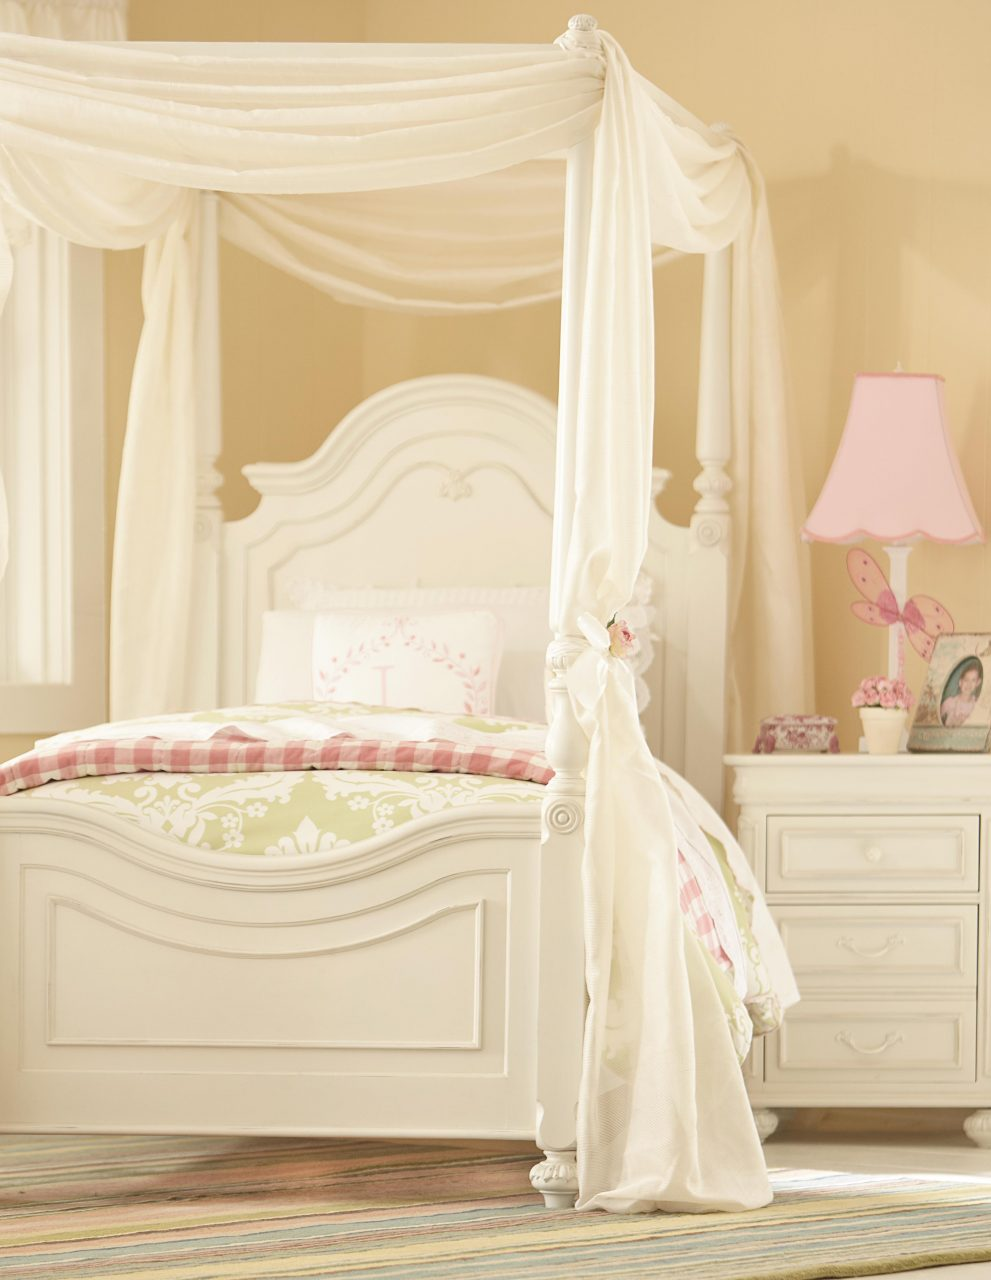 Bedrooms Give Your Little Bedroom Decor With Twin Canopy Bed